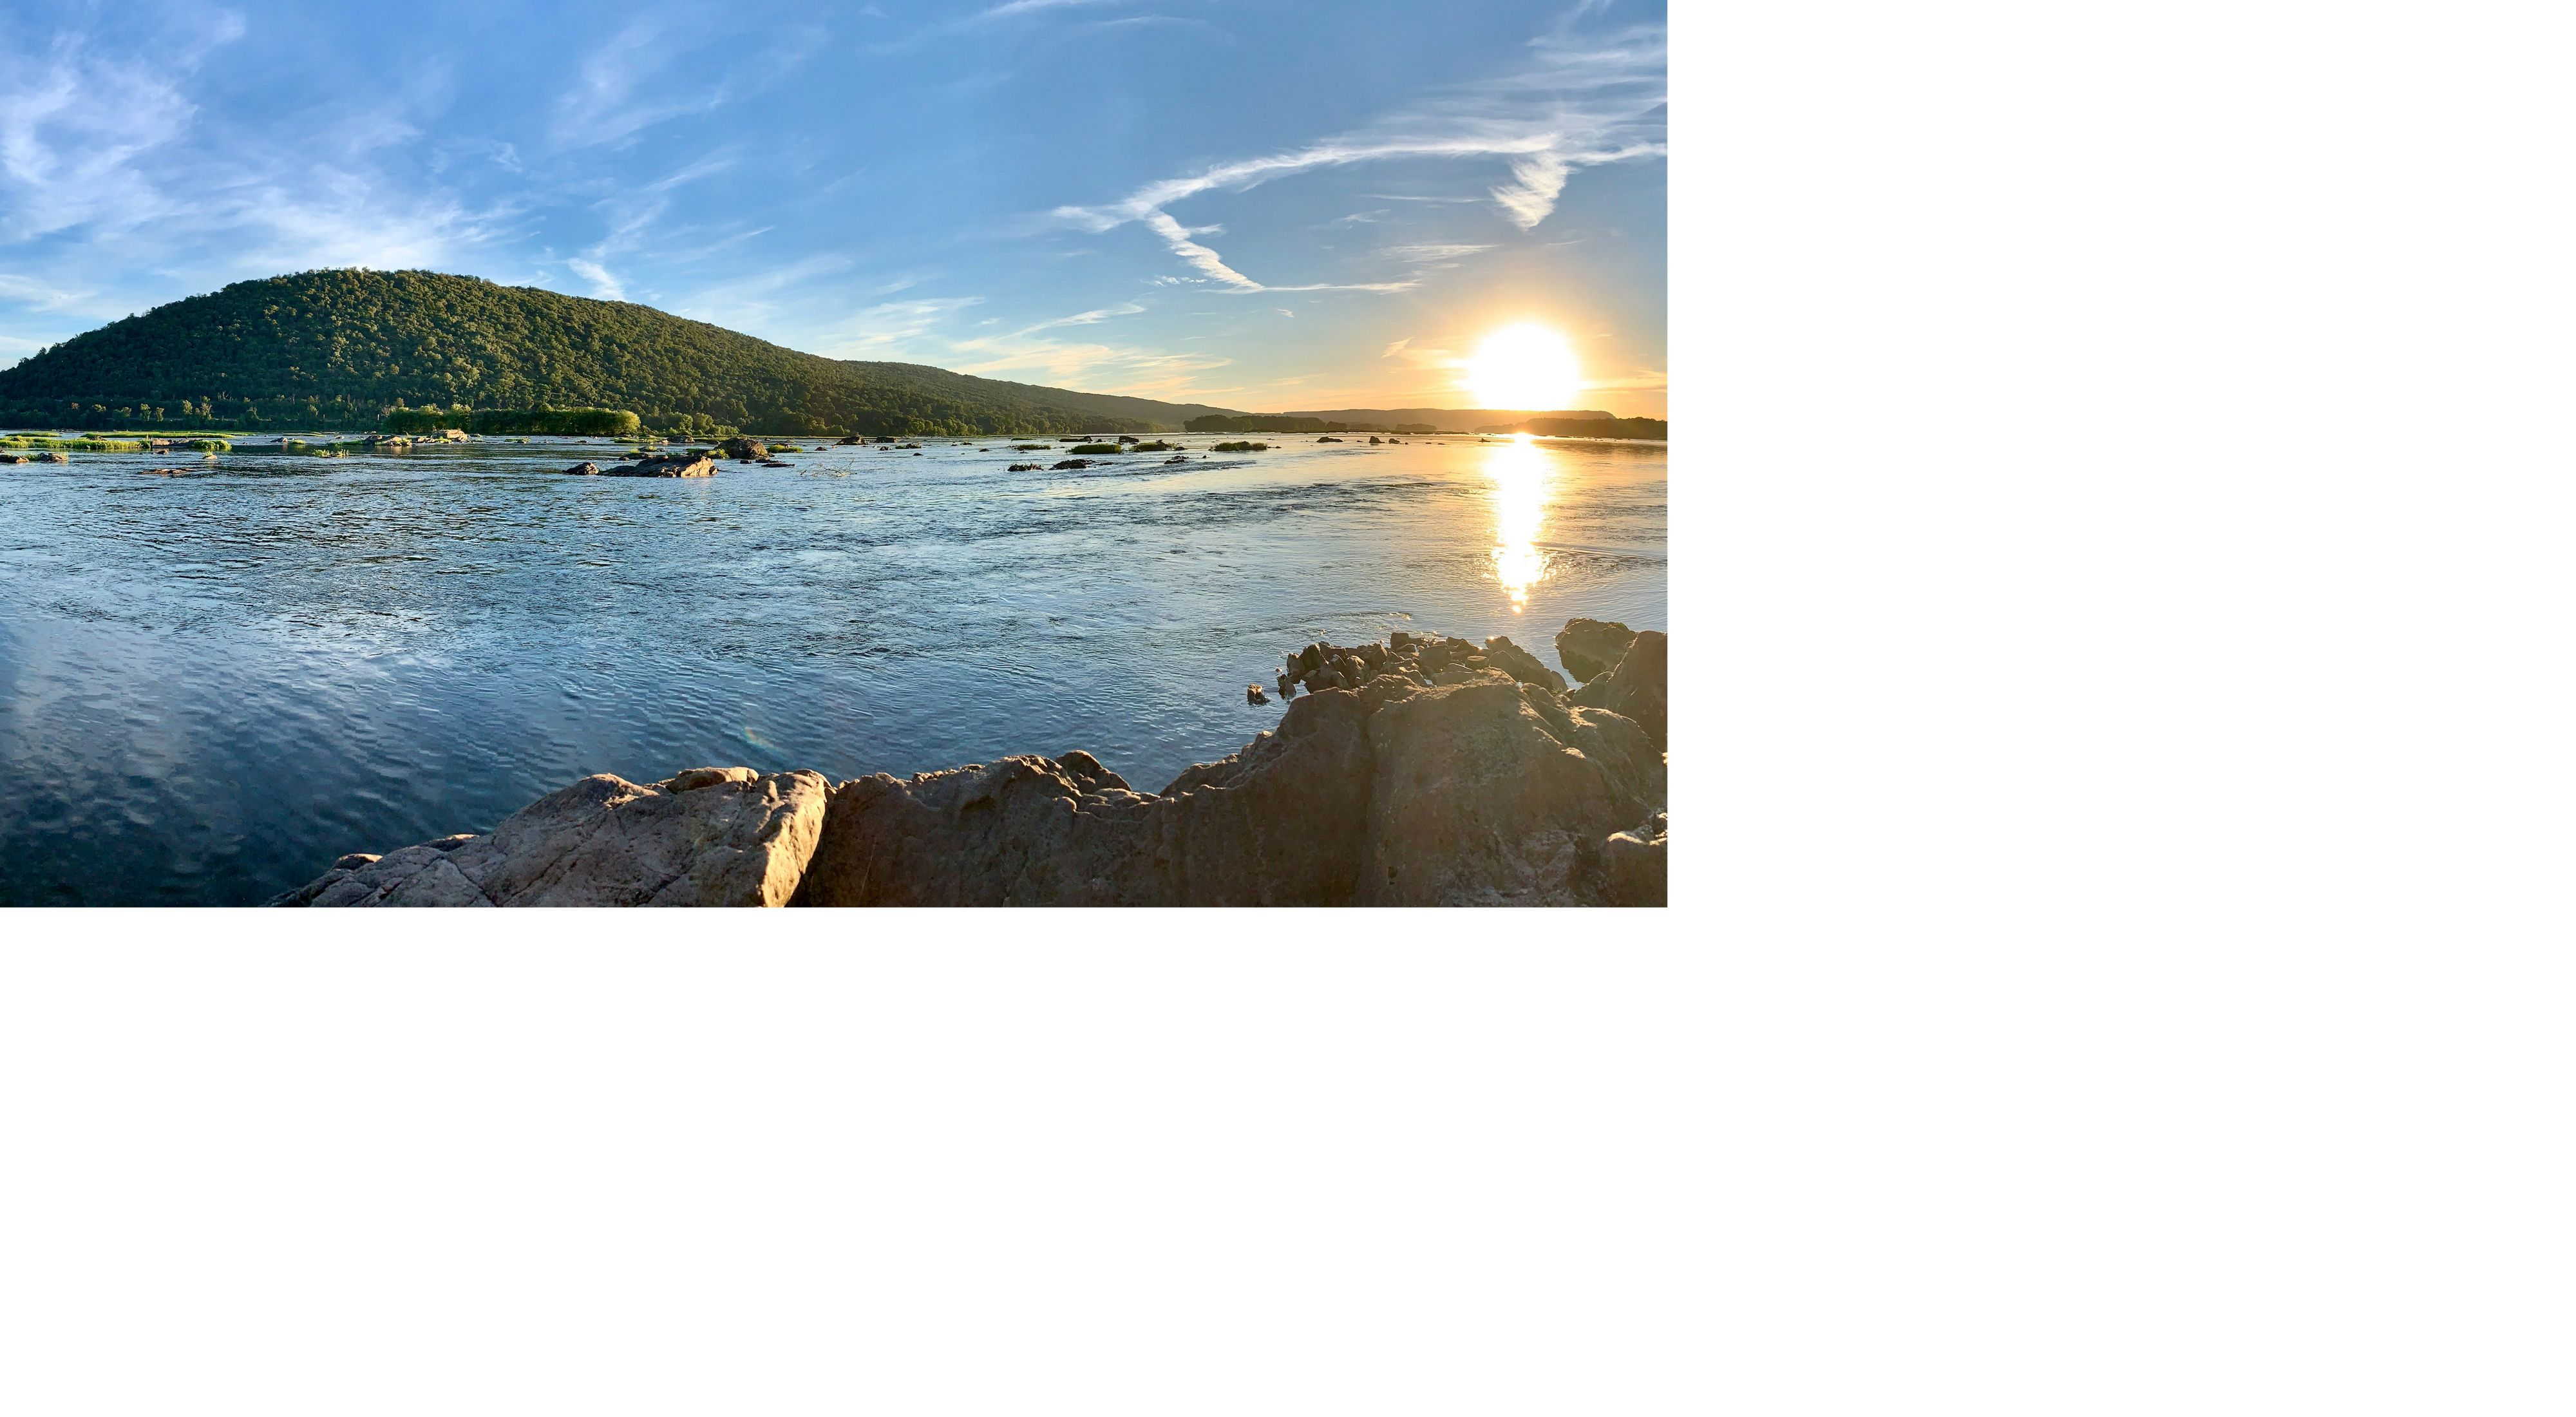 View of Cove Mountain across the Susquehannah River. The rising sun is reflected in the water as the river eddys and pools around the large rocks at its edges and middle.